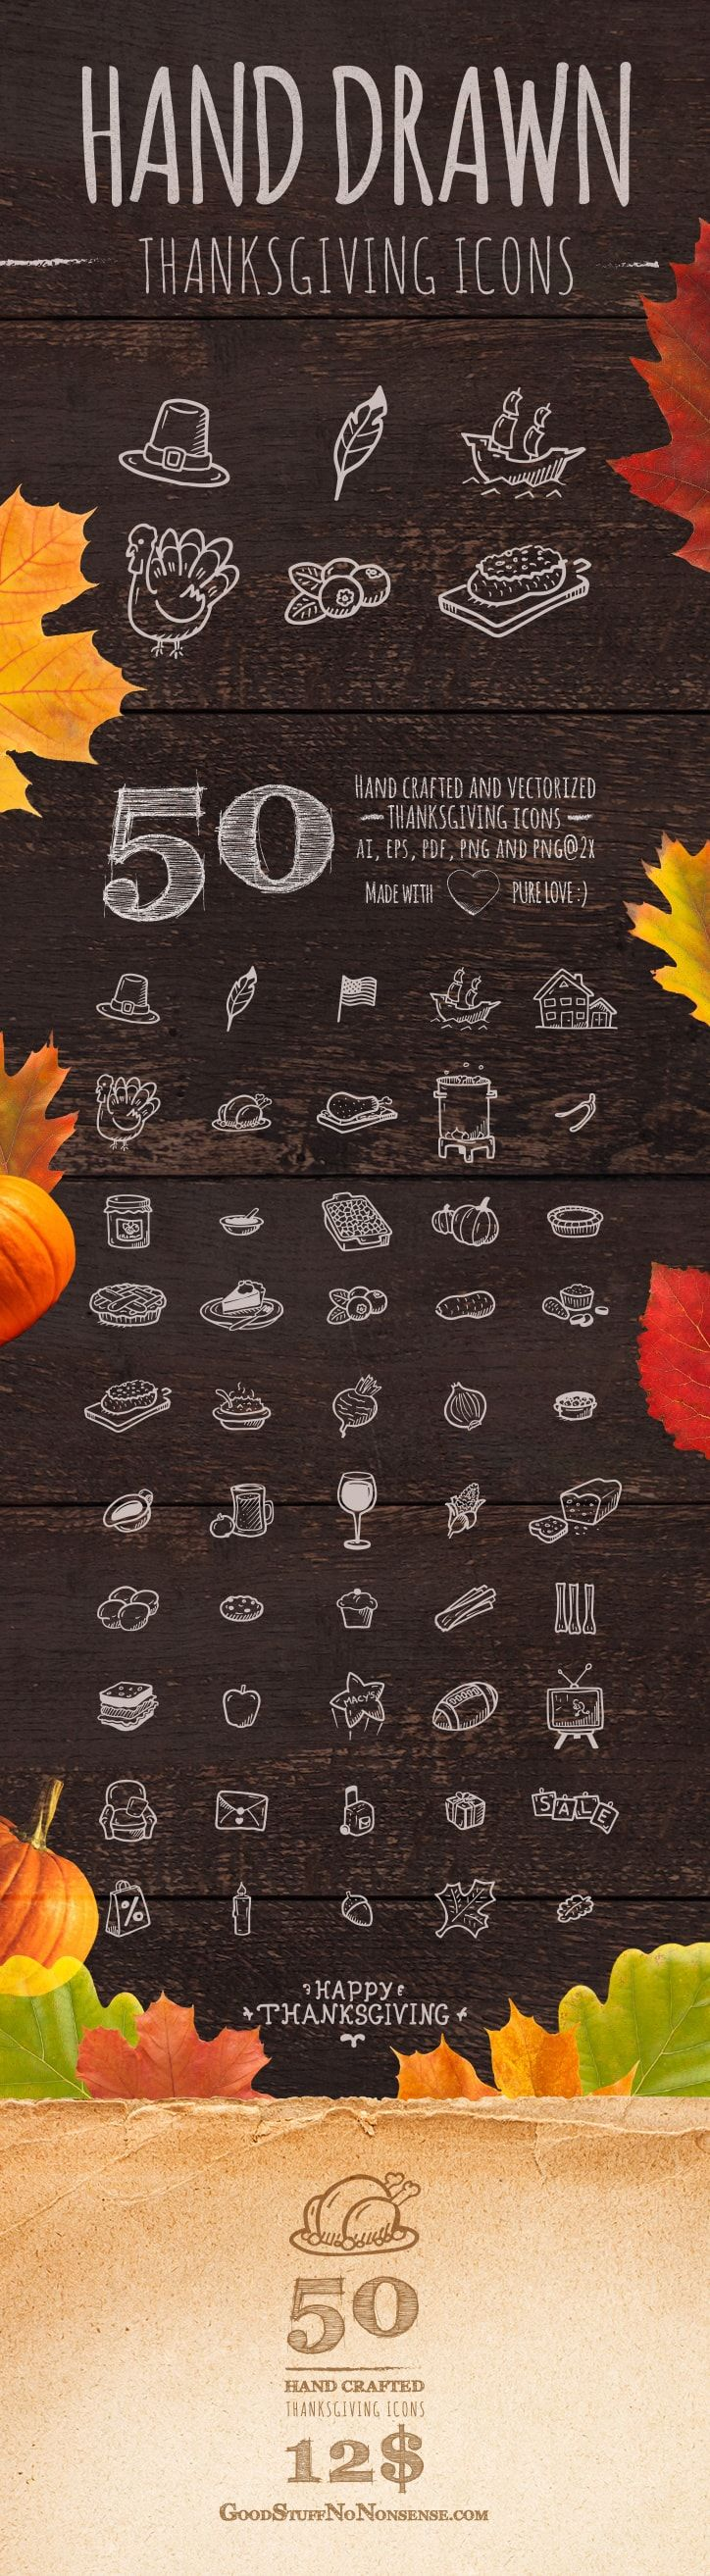 Thanksgiving Icons made by @weboutloud